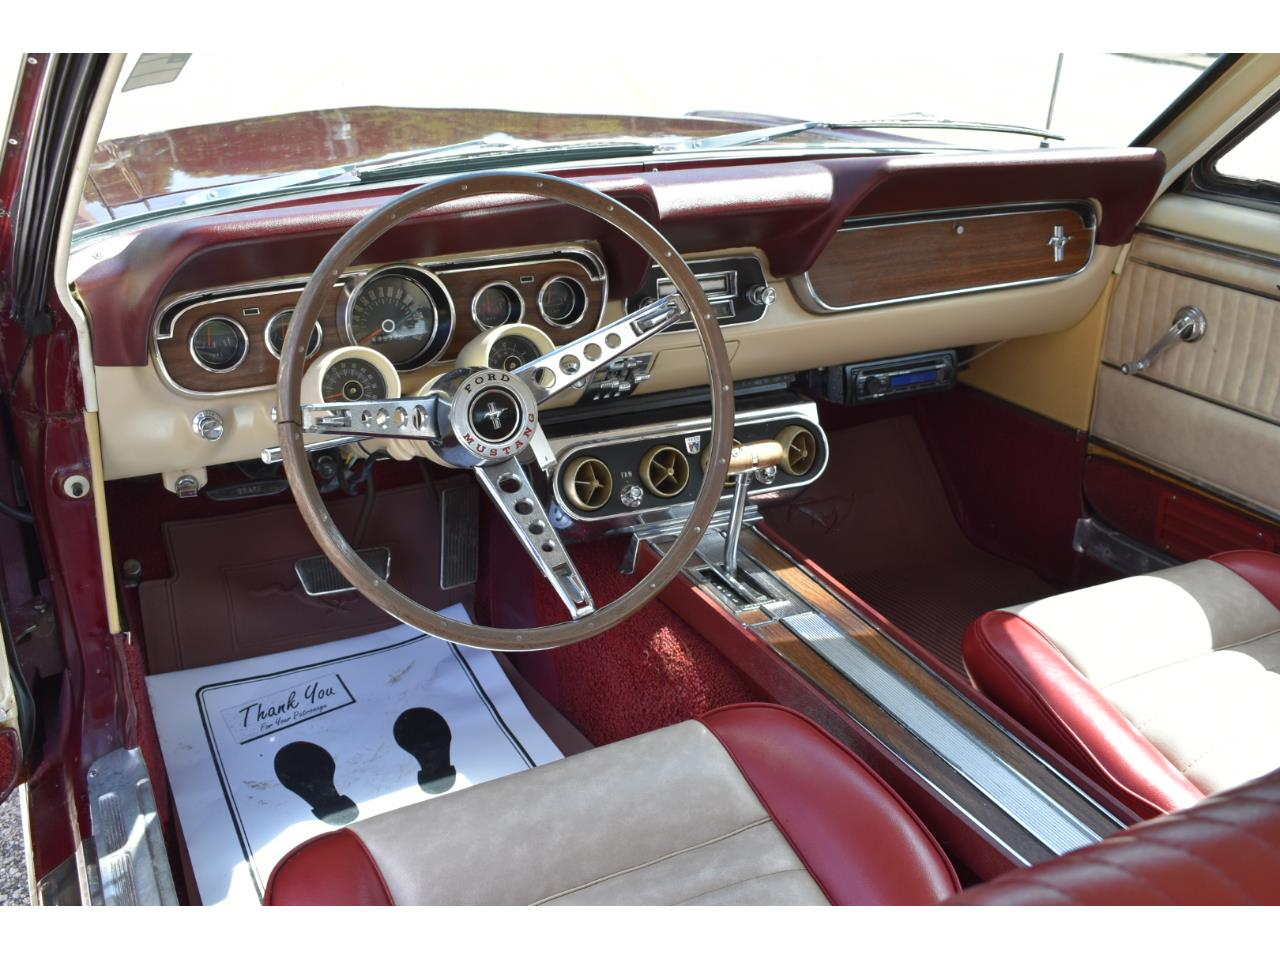 1966 Ford Mustang for sale in Greene, IA – photo 23